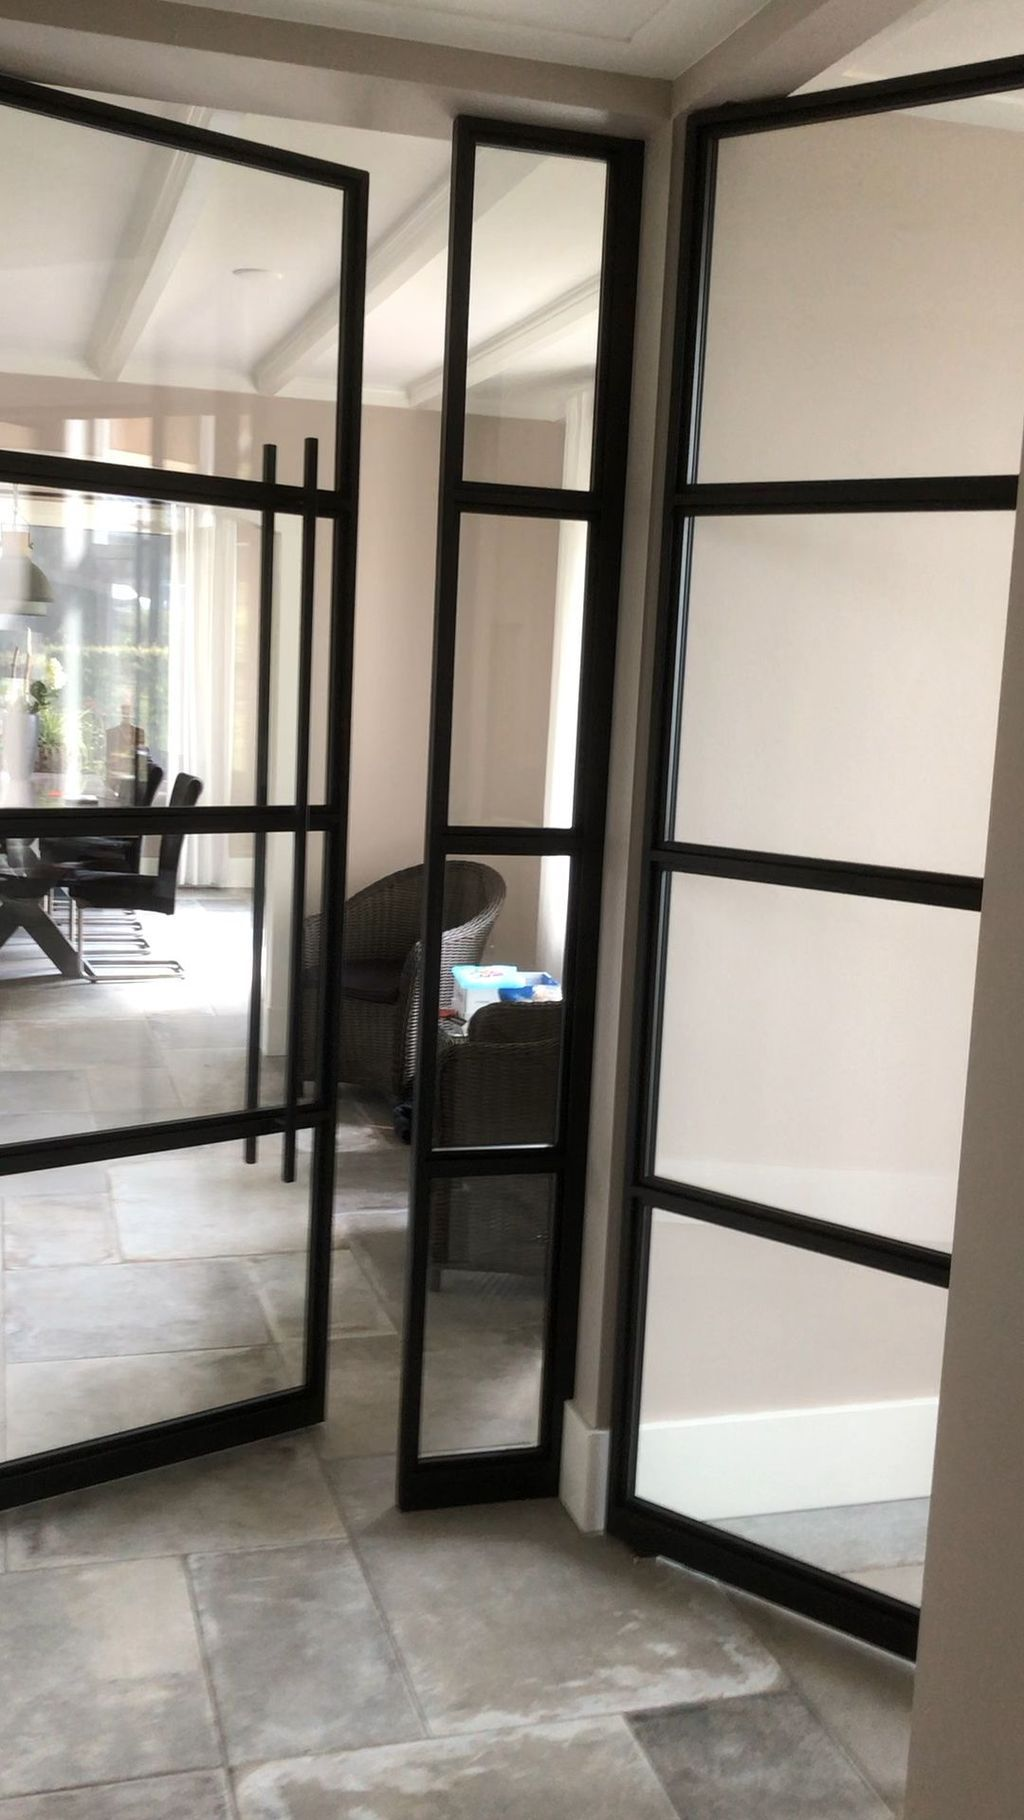 50 Delicate Ikea Room Dividers Ideas You Need To Know In 2020 Glass Doors Interior Home Ikea Room Divider